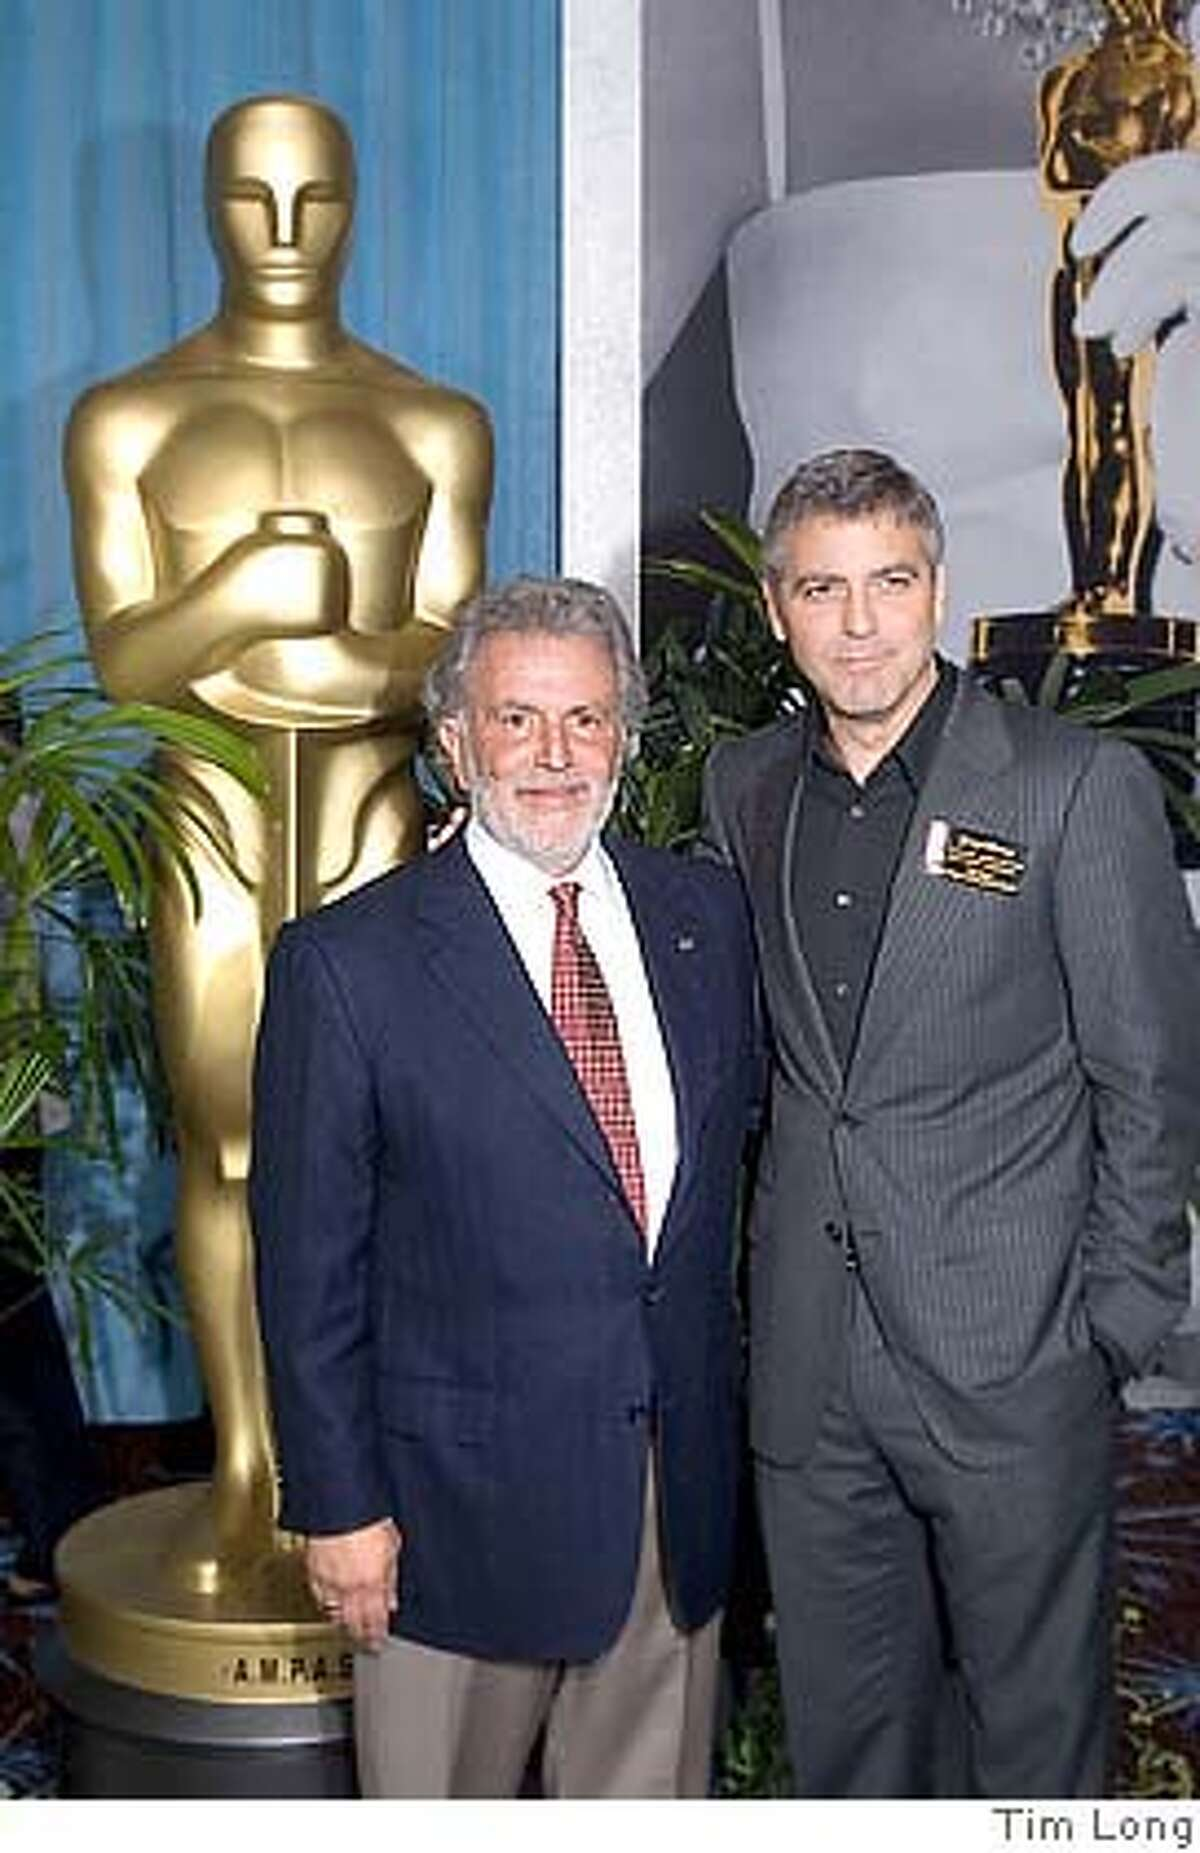 �Academy President Sid Ganis and Oscar winning actor George Clooney at the Nominees Luncheon for the 78th Academy Awards. Photo by TIM LONG DIGITAL IMAGE